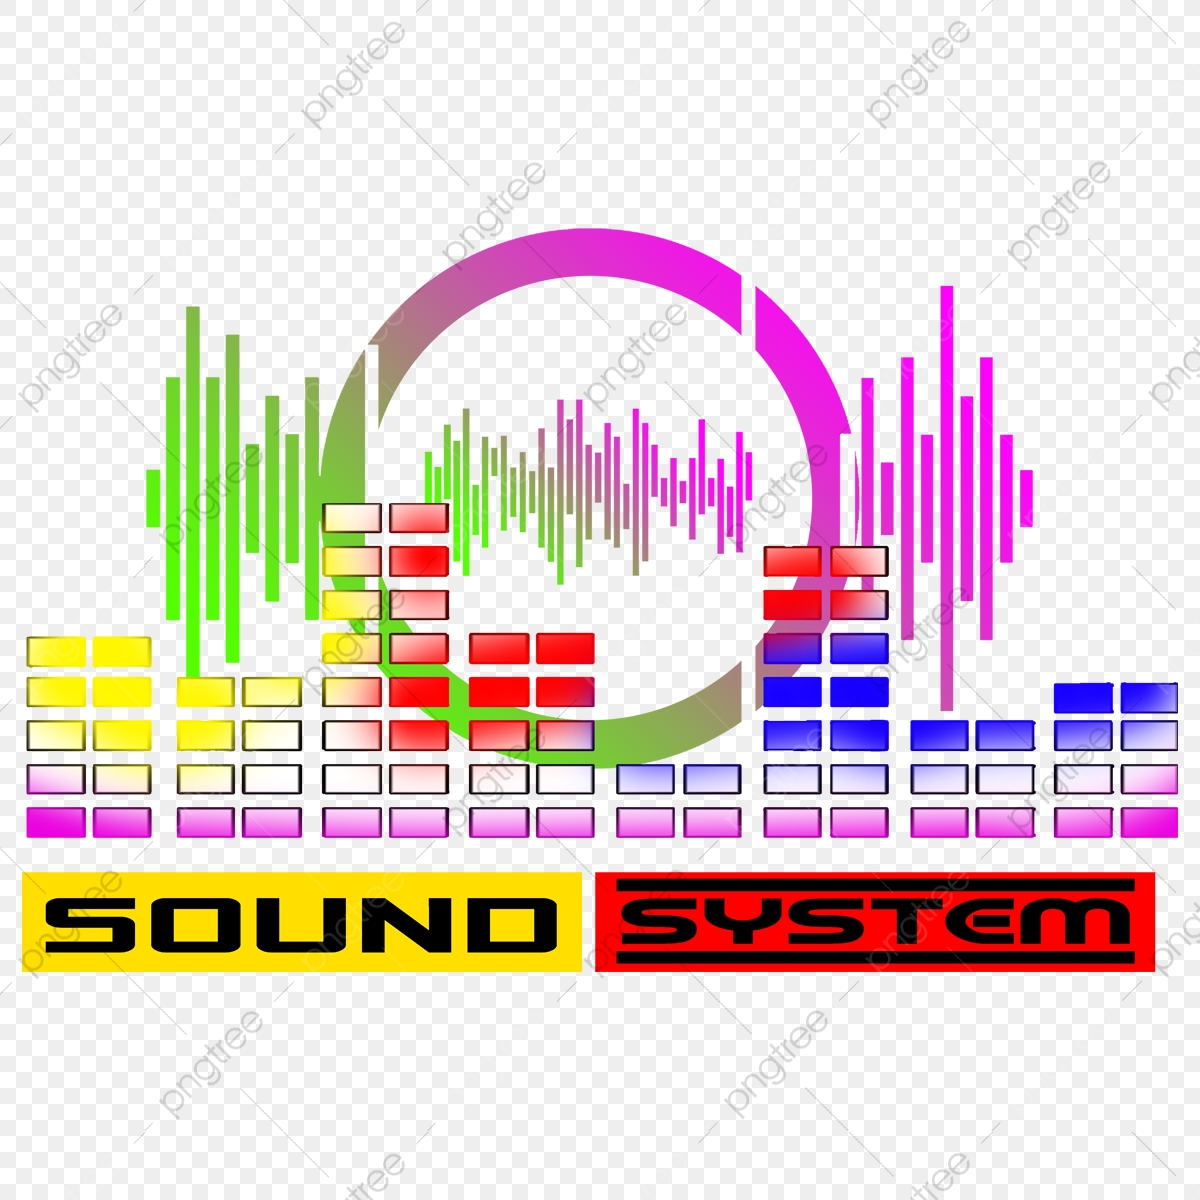 sound system png vector psd and clipart with transparent background for free download pngtree https pngtree com freepng sound system t shirt design 5326206 html